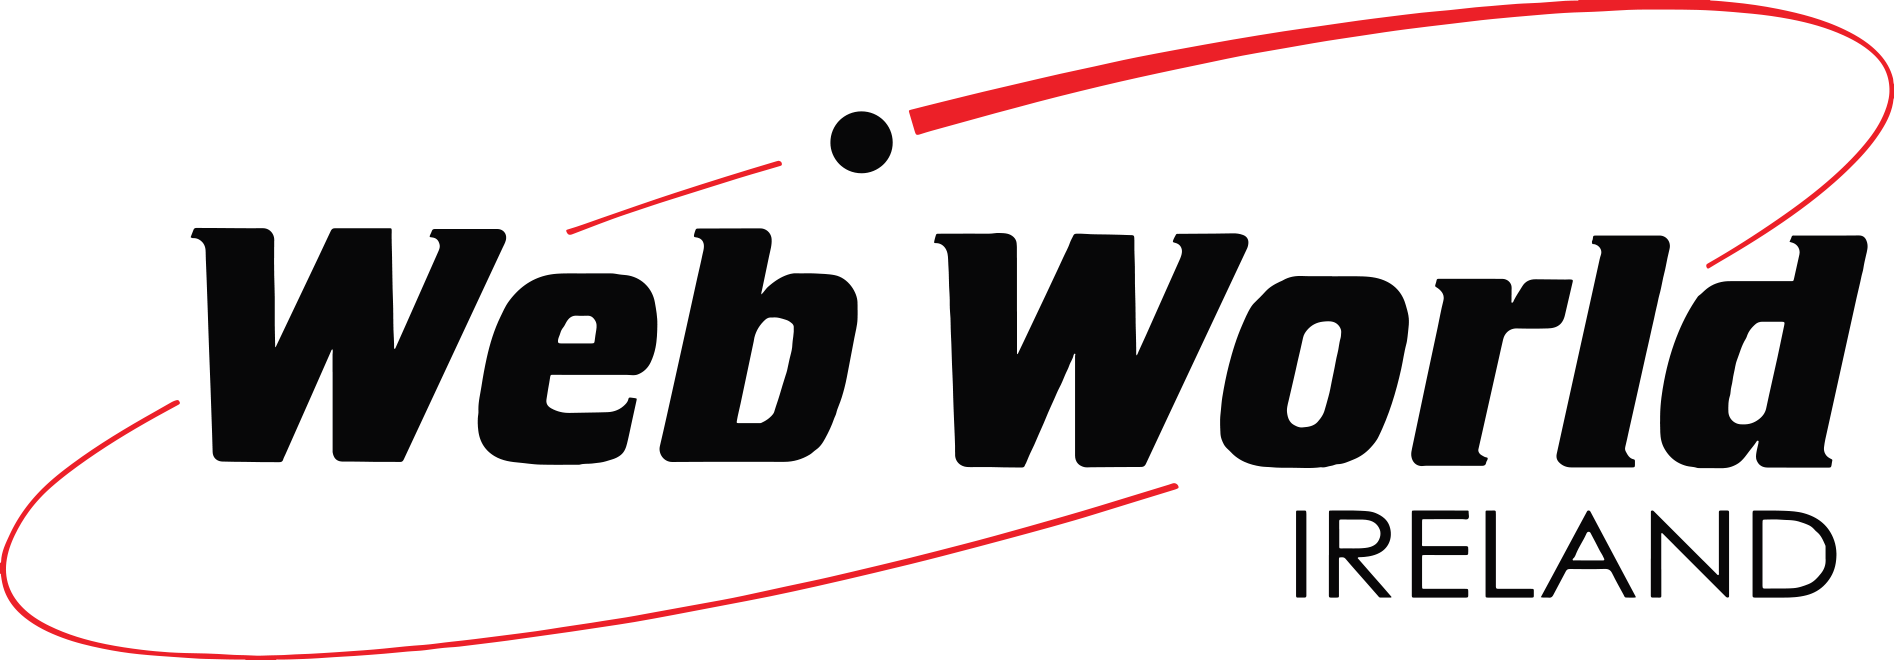 Web World Ireland - Web Hosting Services